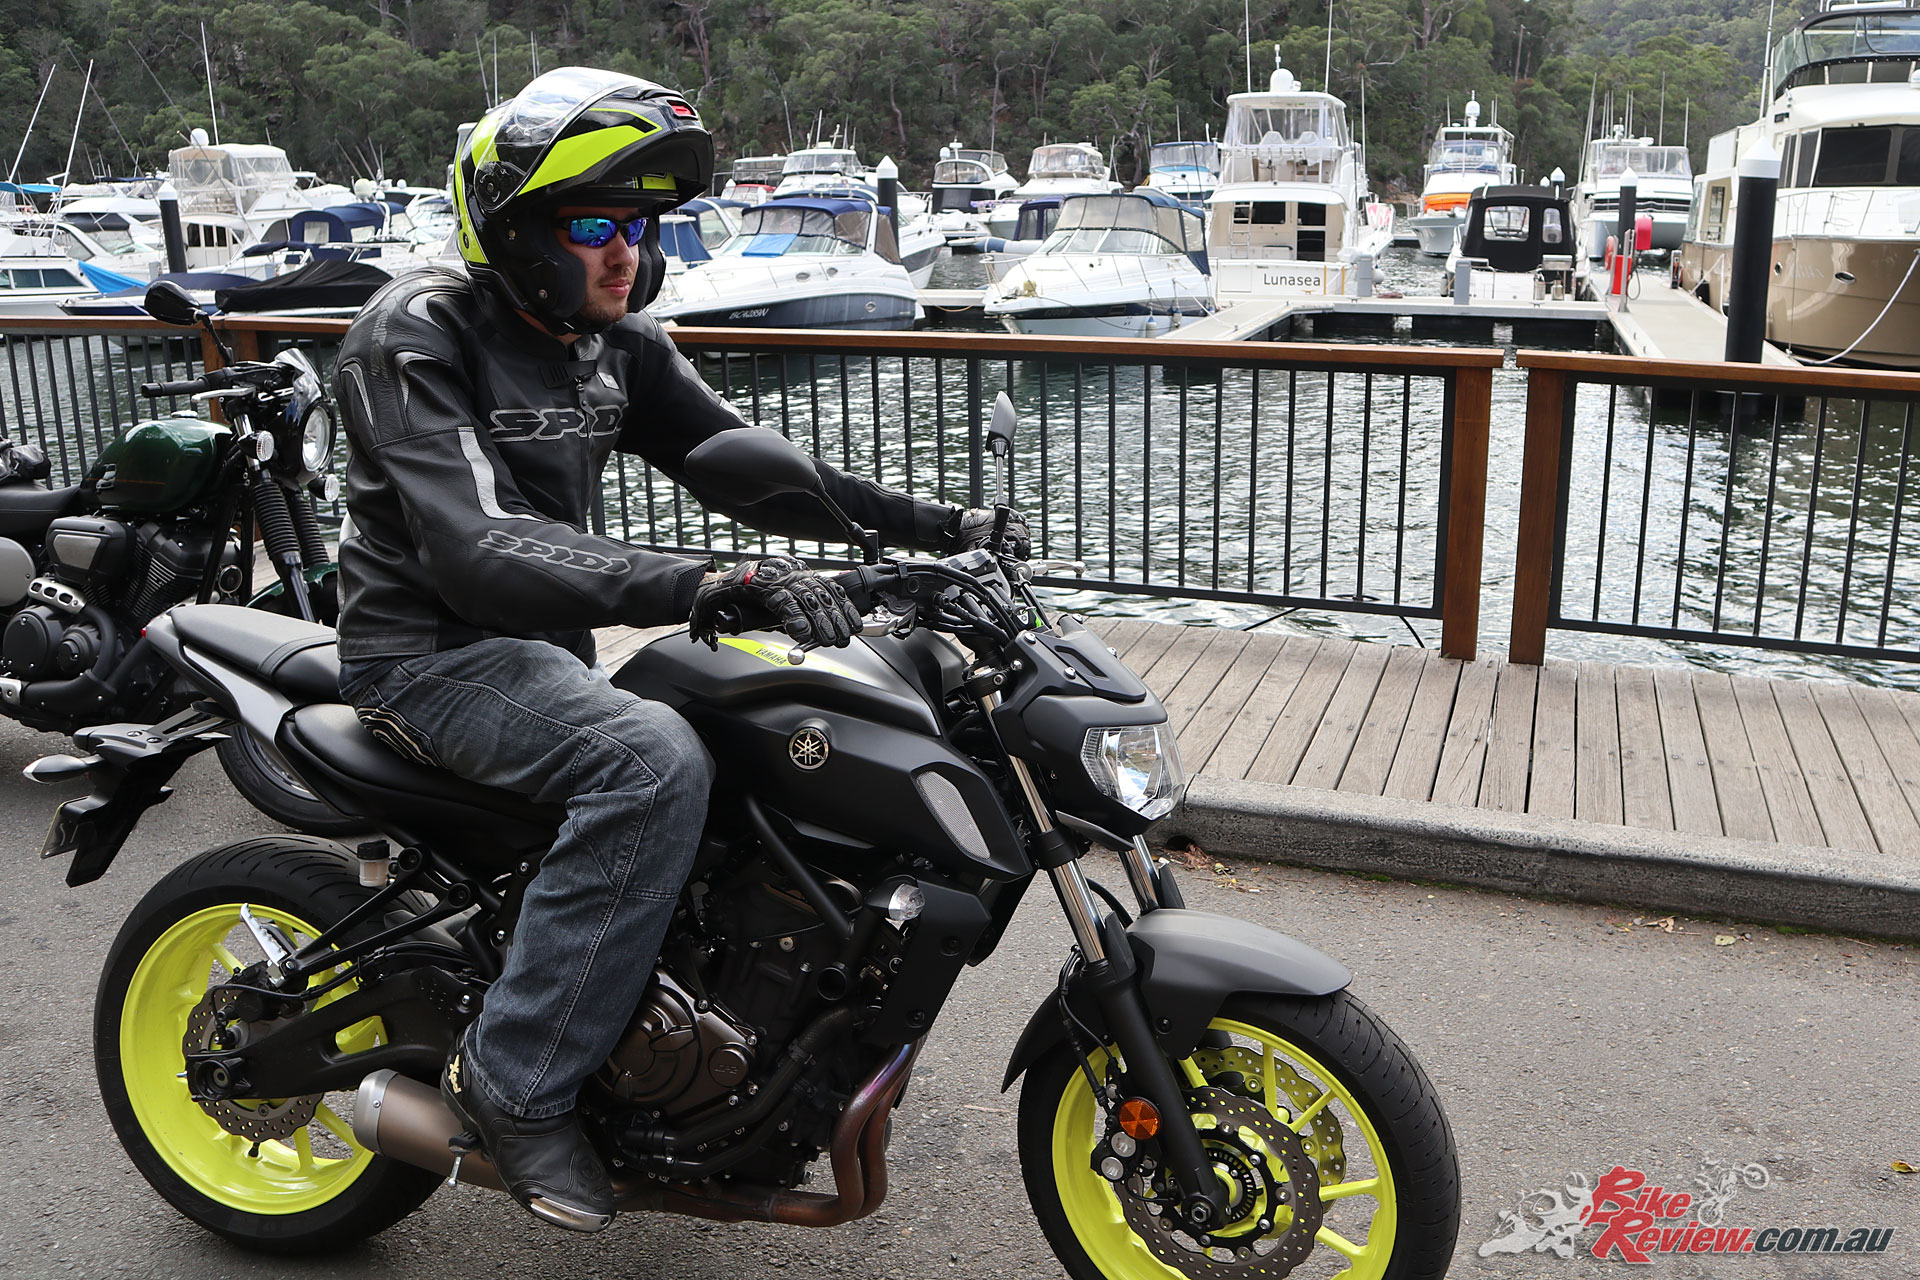 The Shoei Neotec II helmet in Excursion TC-3 suit's the new Yamaha MT-07 colour scheme perfectly!